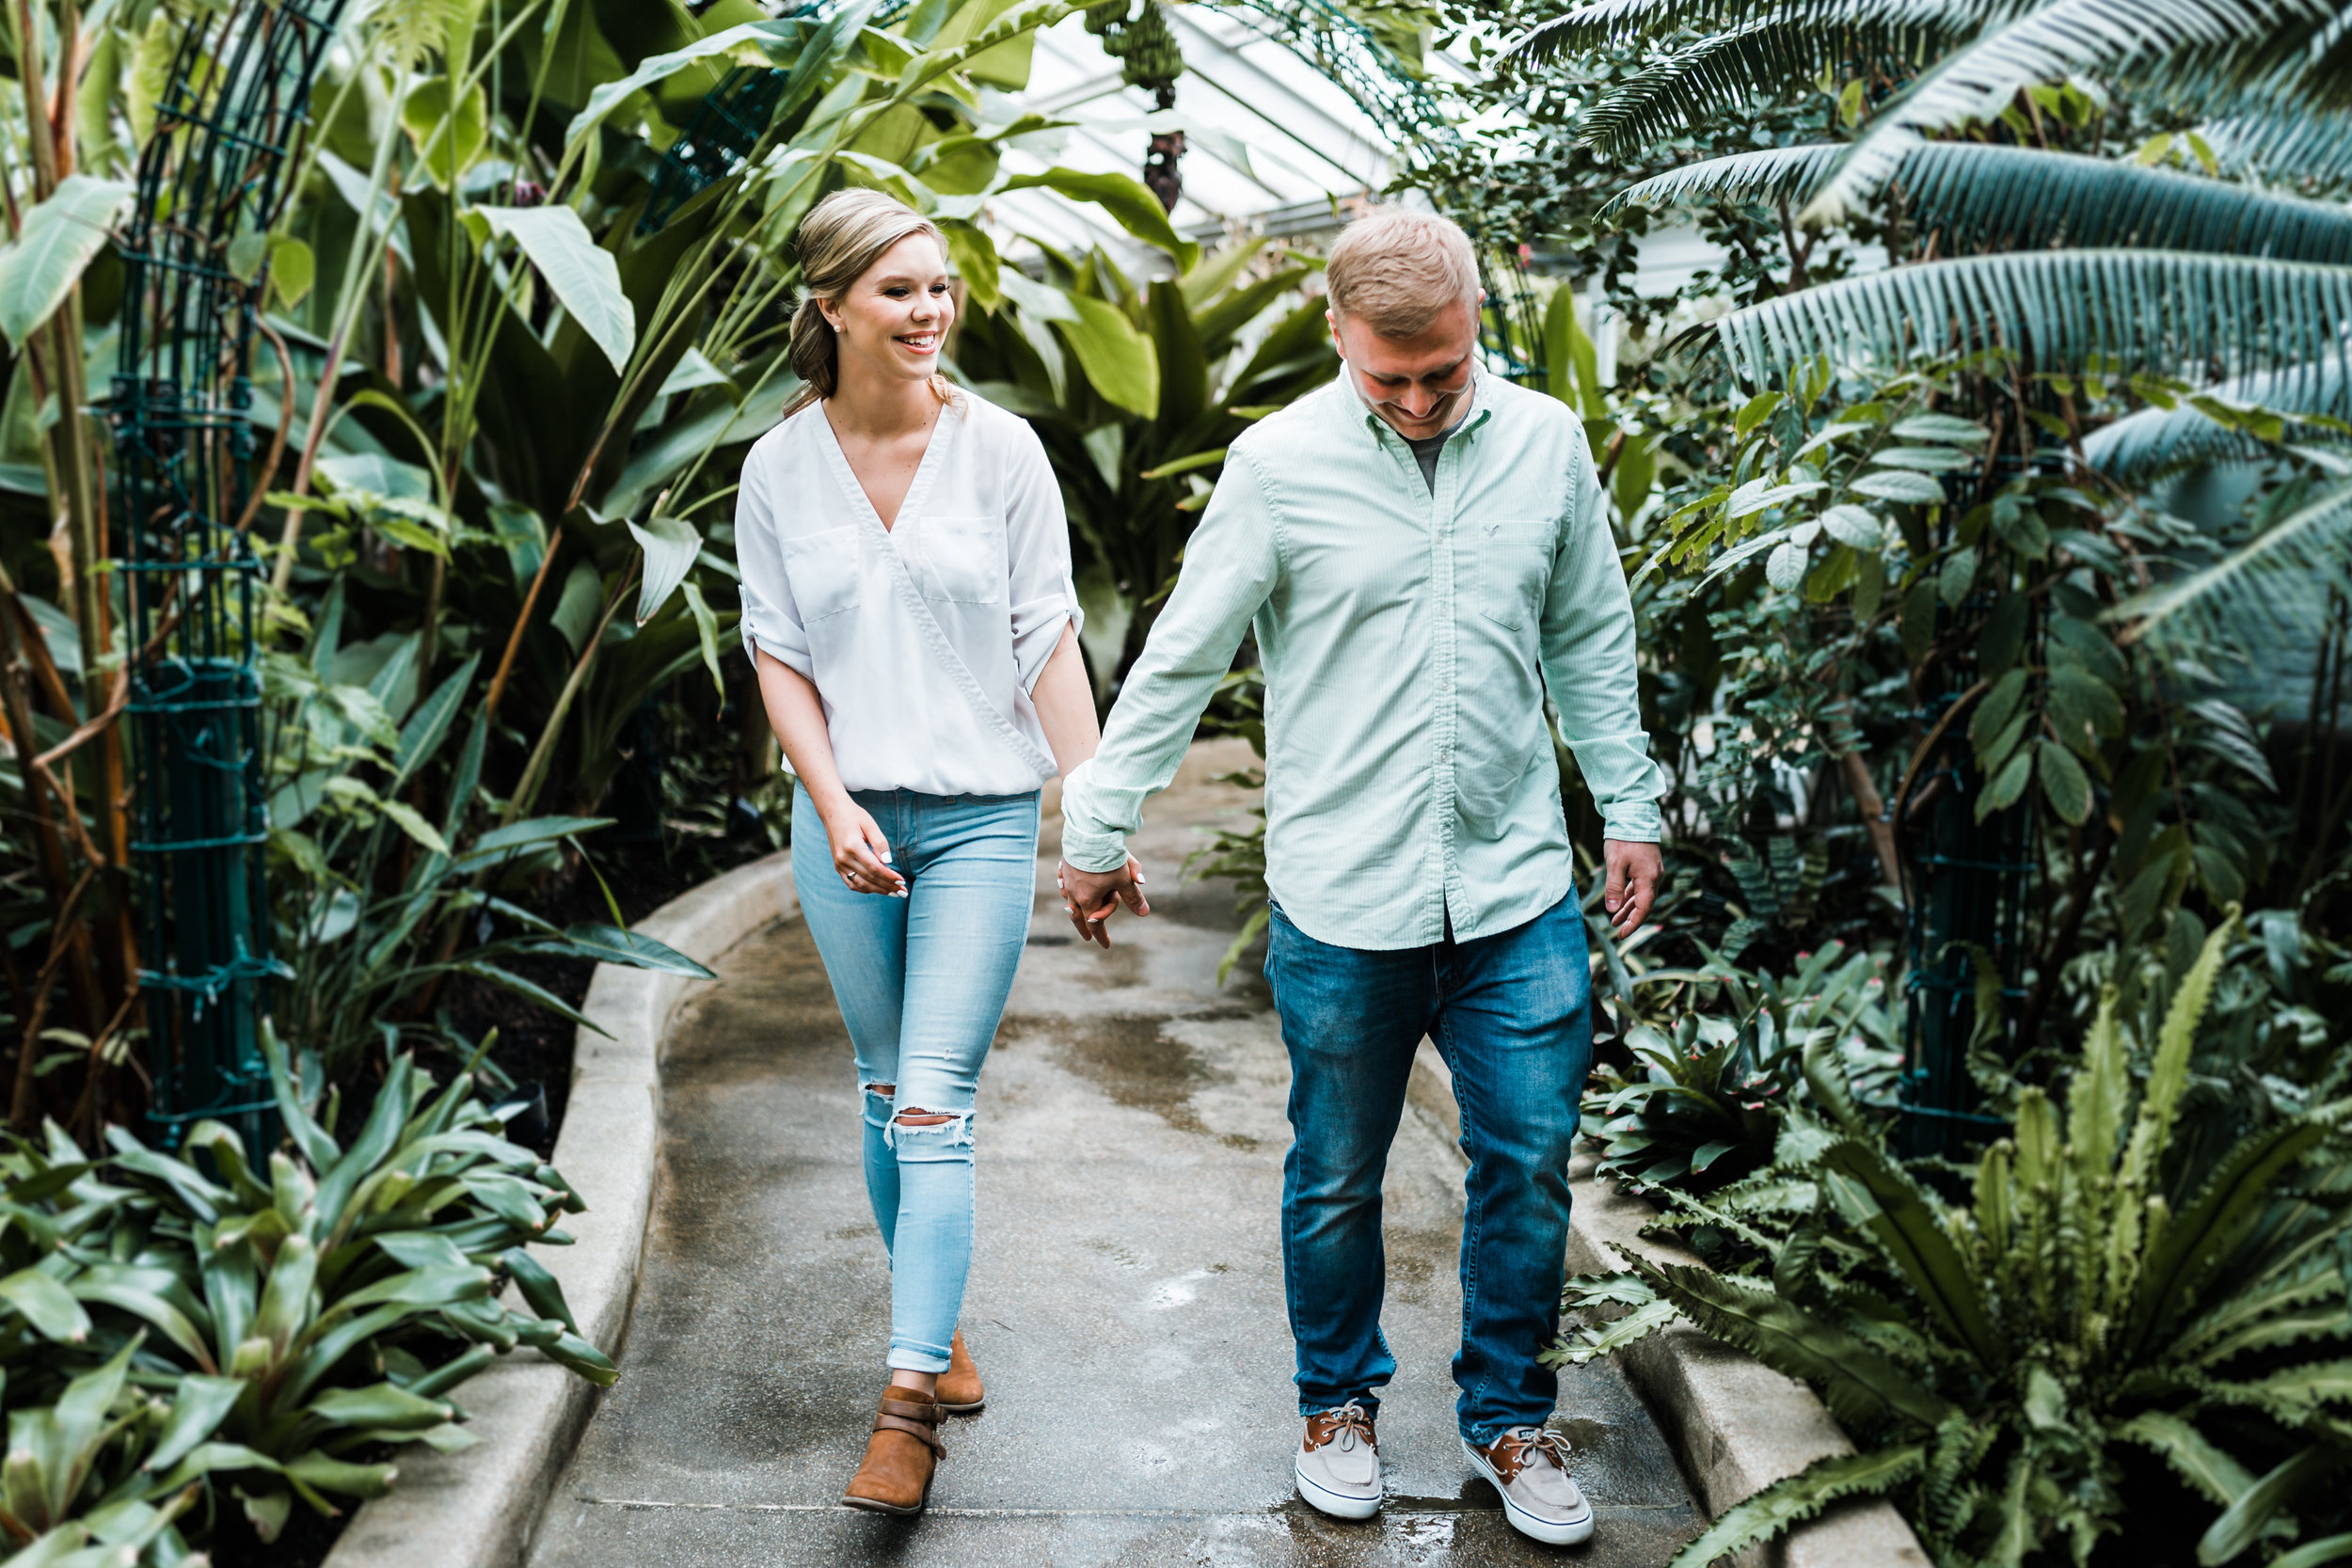 conservatory inspired engagement session in Baltimore MD - top rated husband and wife photo video team based in Maryland